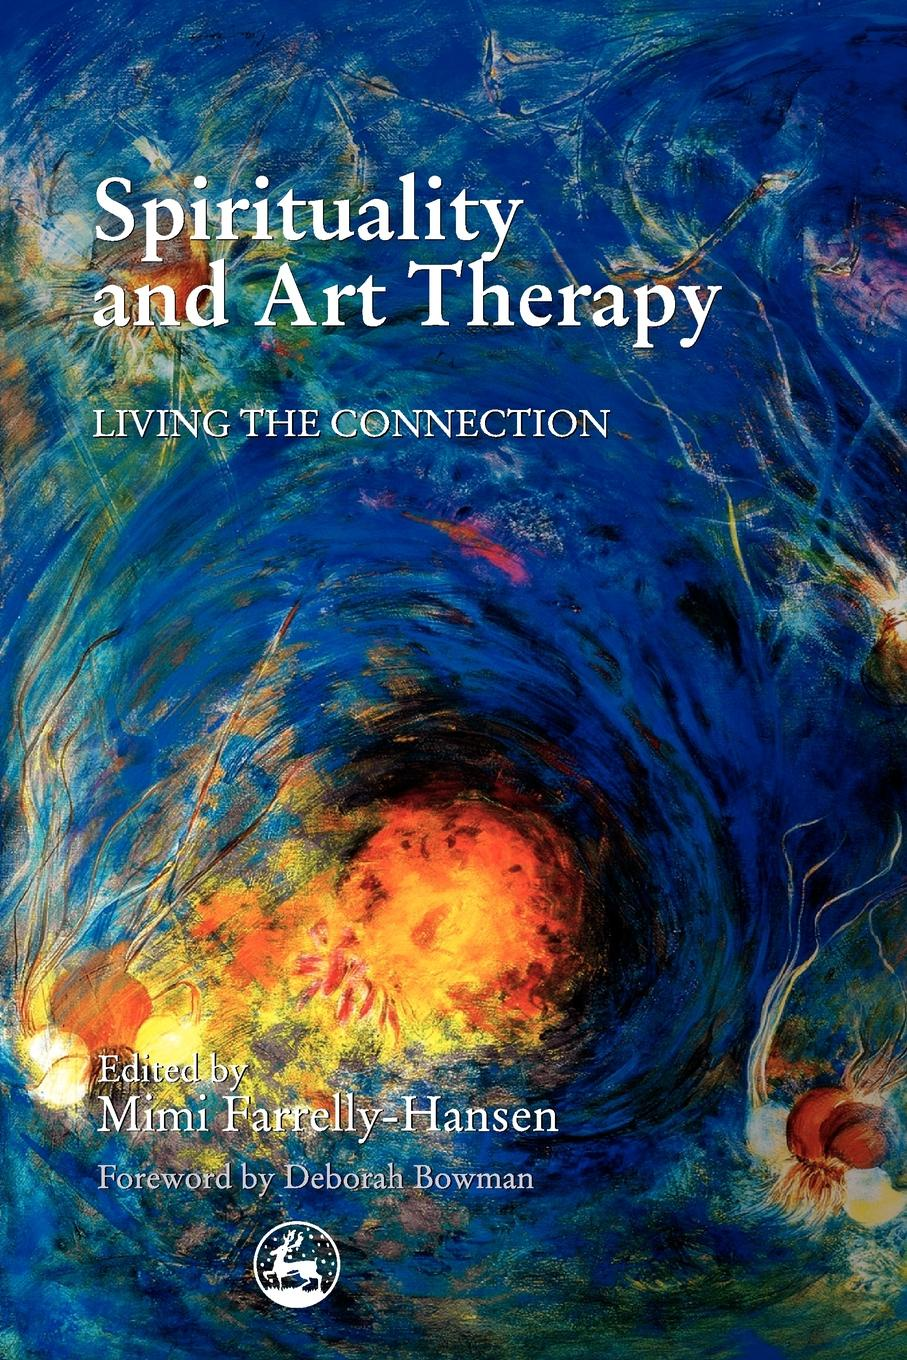 Spirituality and Art Therapy. Living the Connection gregory j laughery living spirituality illuminating the path